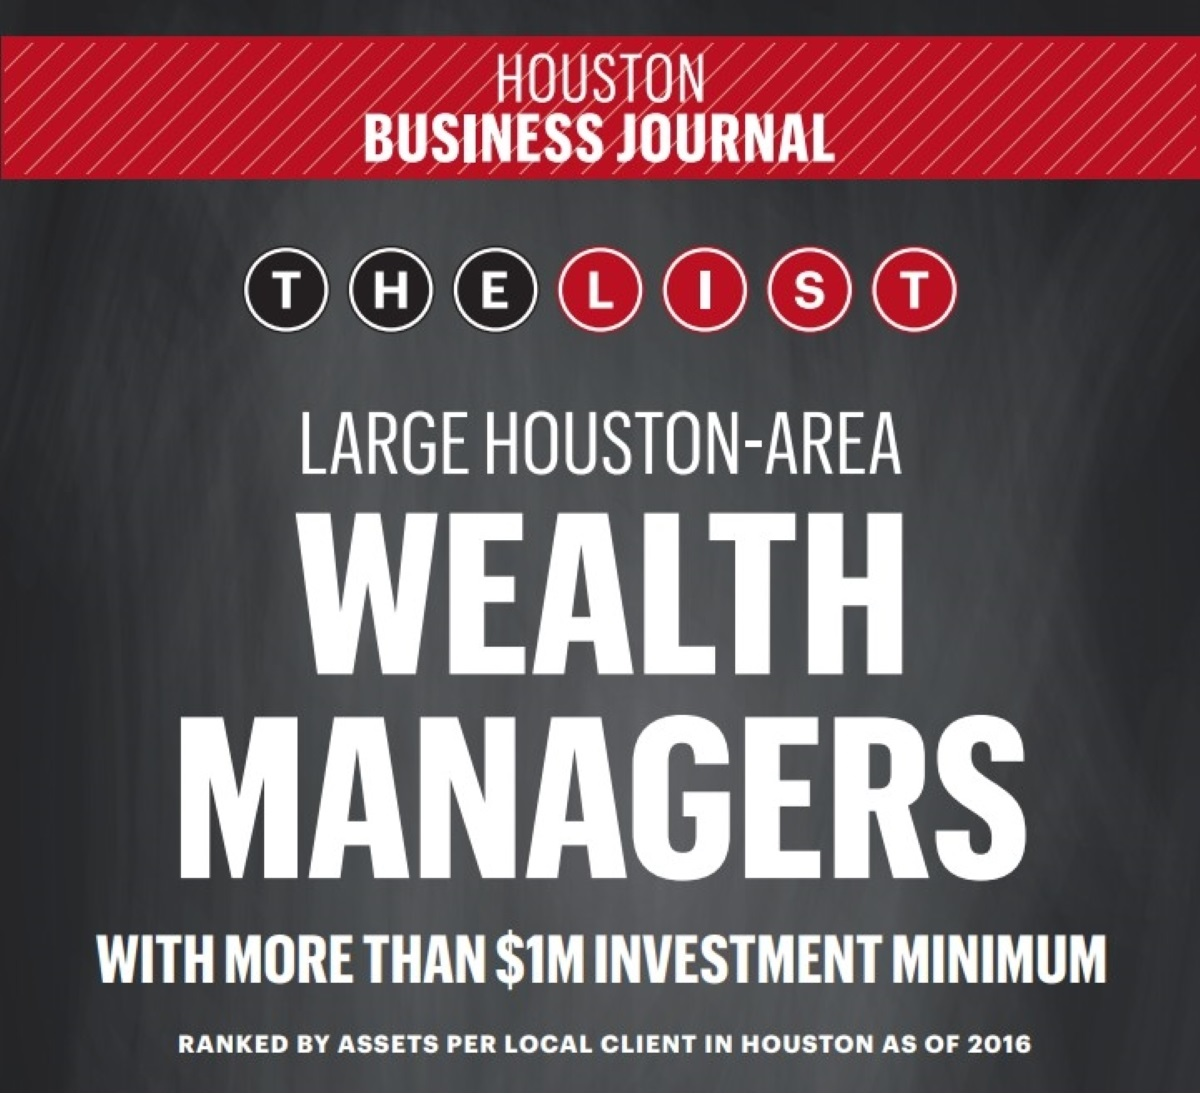 Investec - Houston Business Journal Largest Houston-Area Money Management Firms, 2017